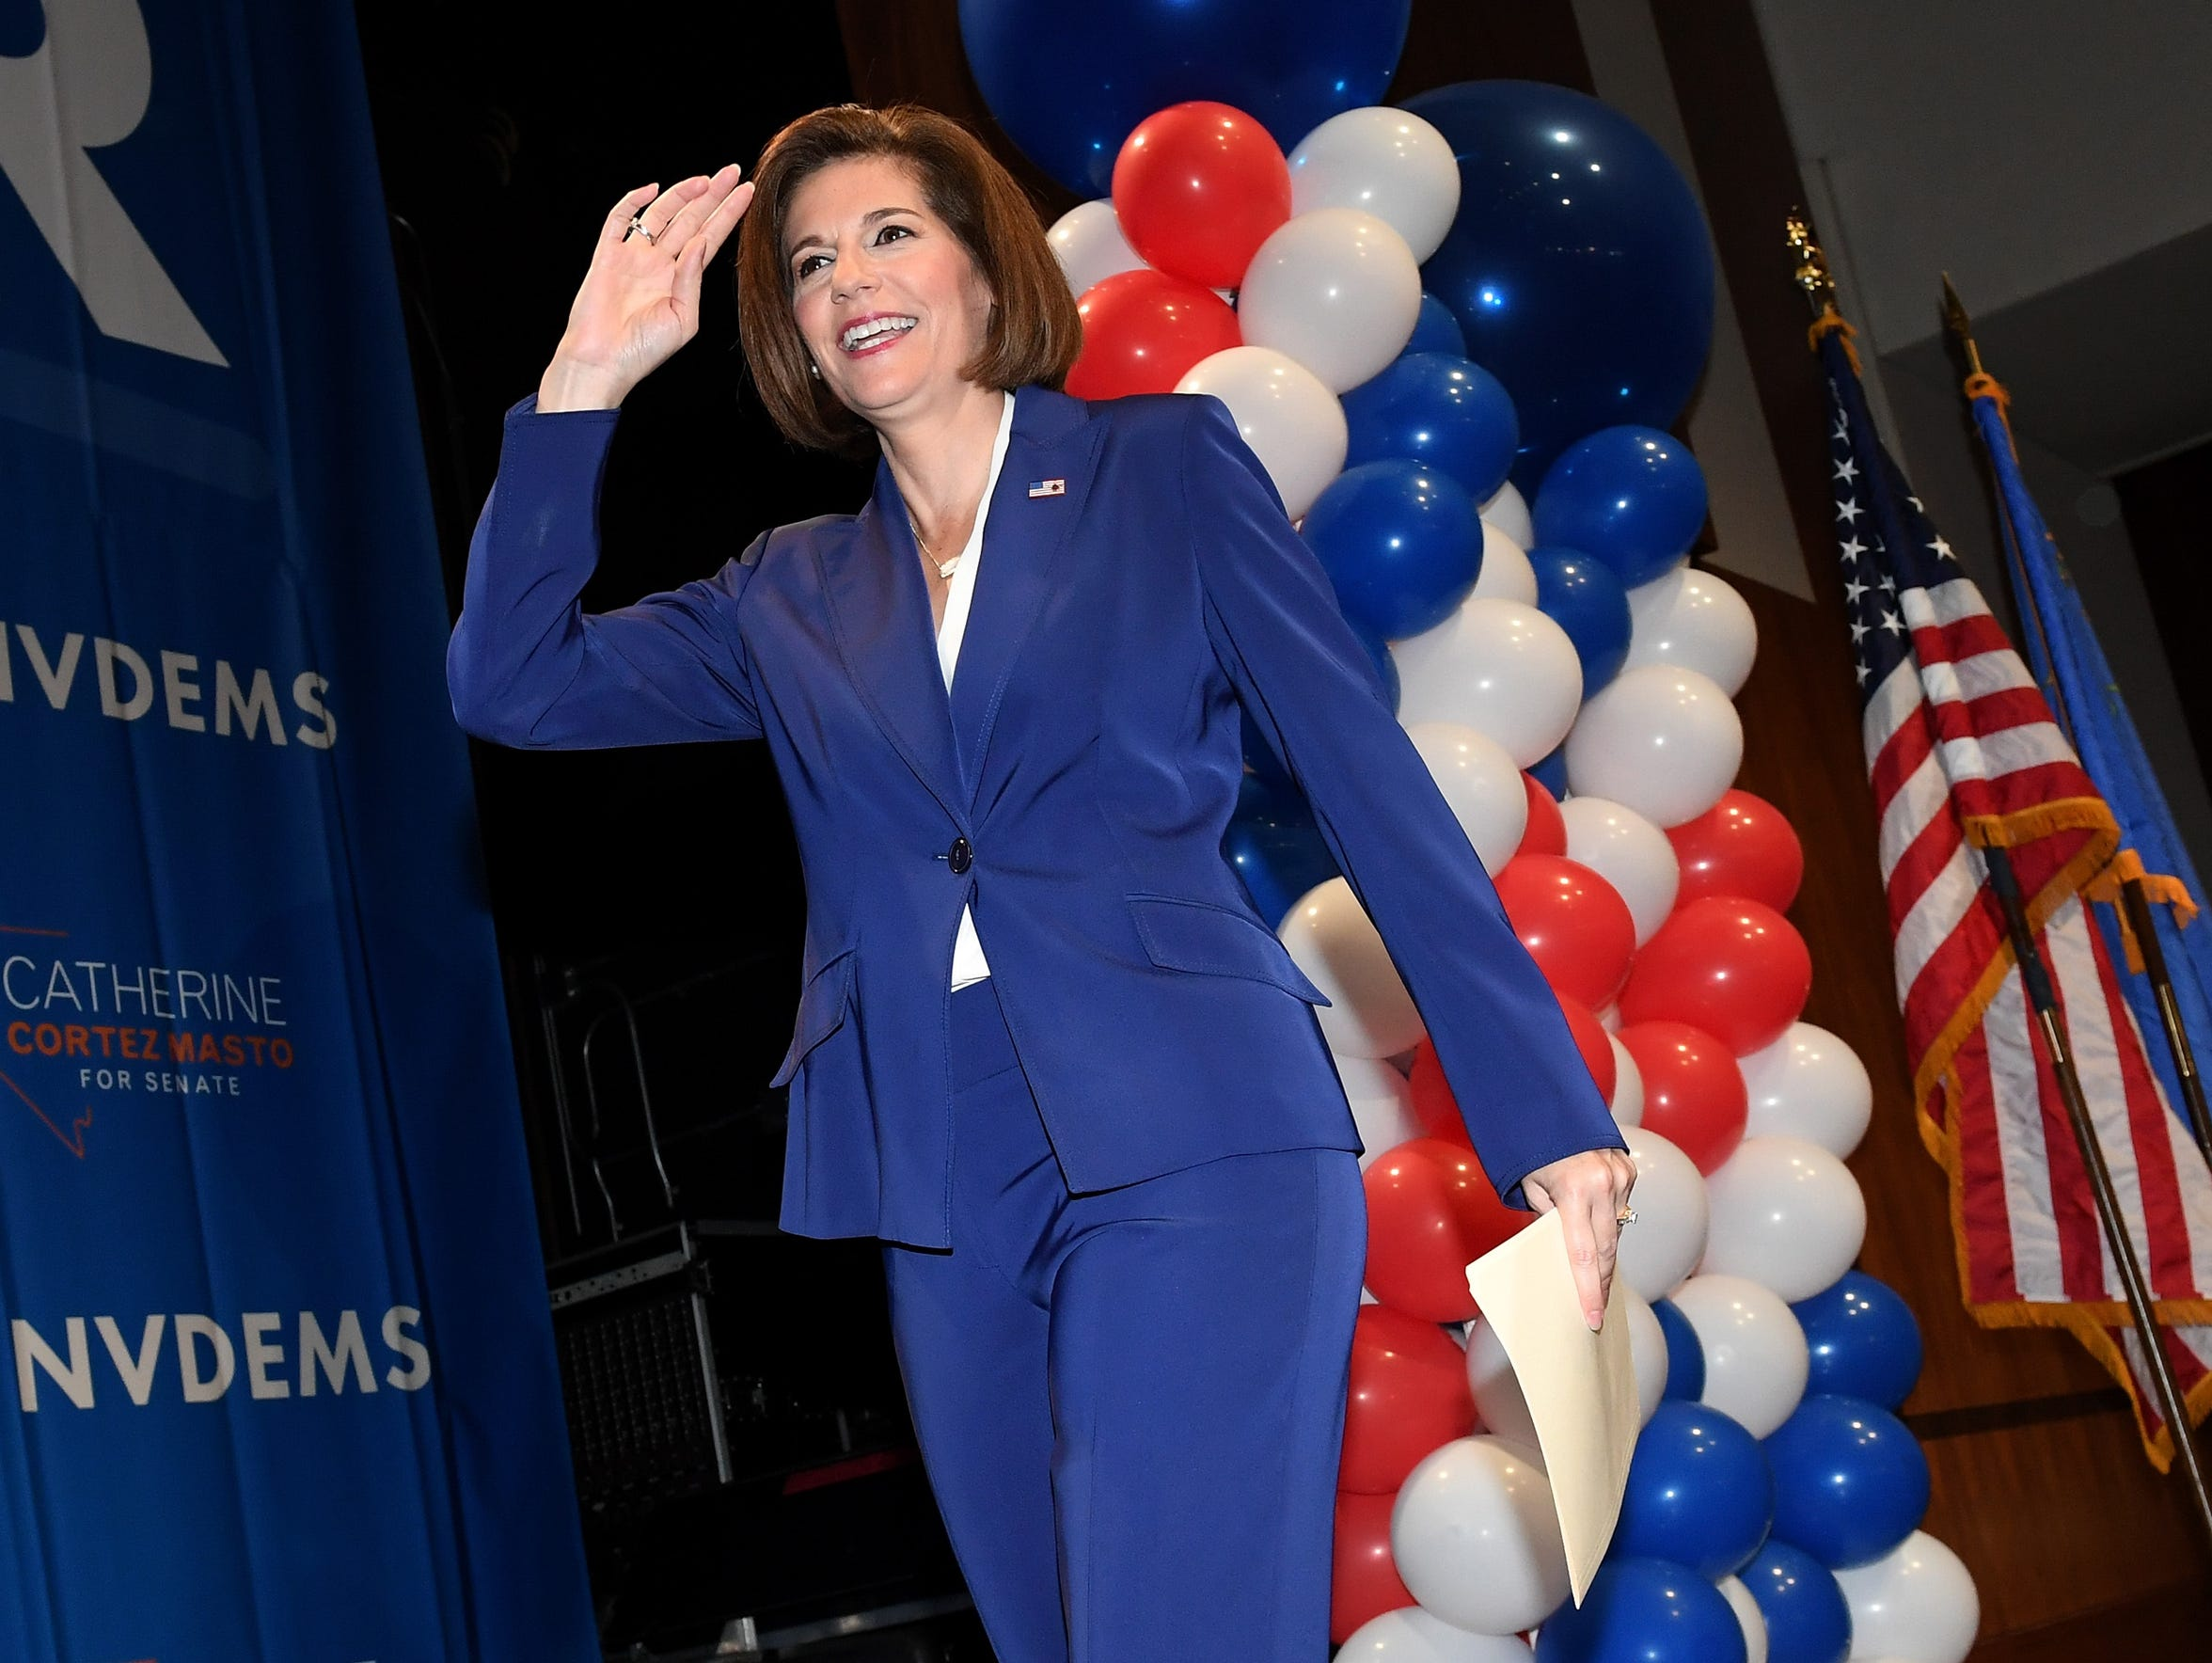 Catherine Cortez Masto walks on stage in Las Vegas